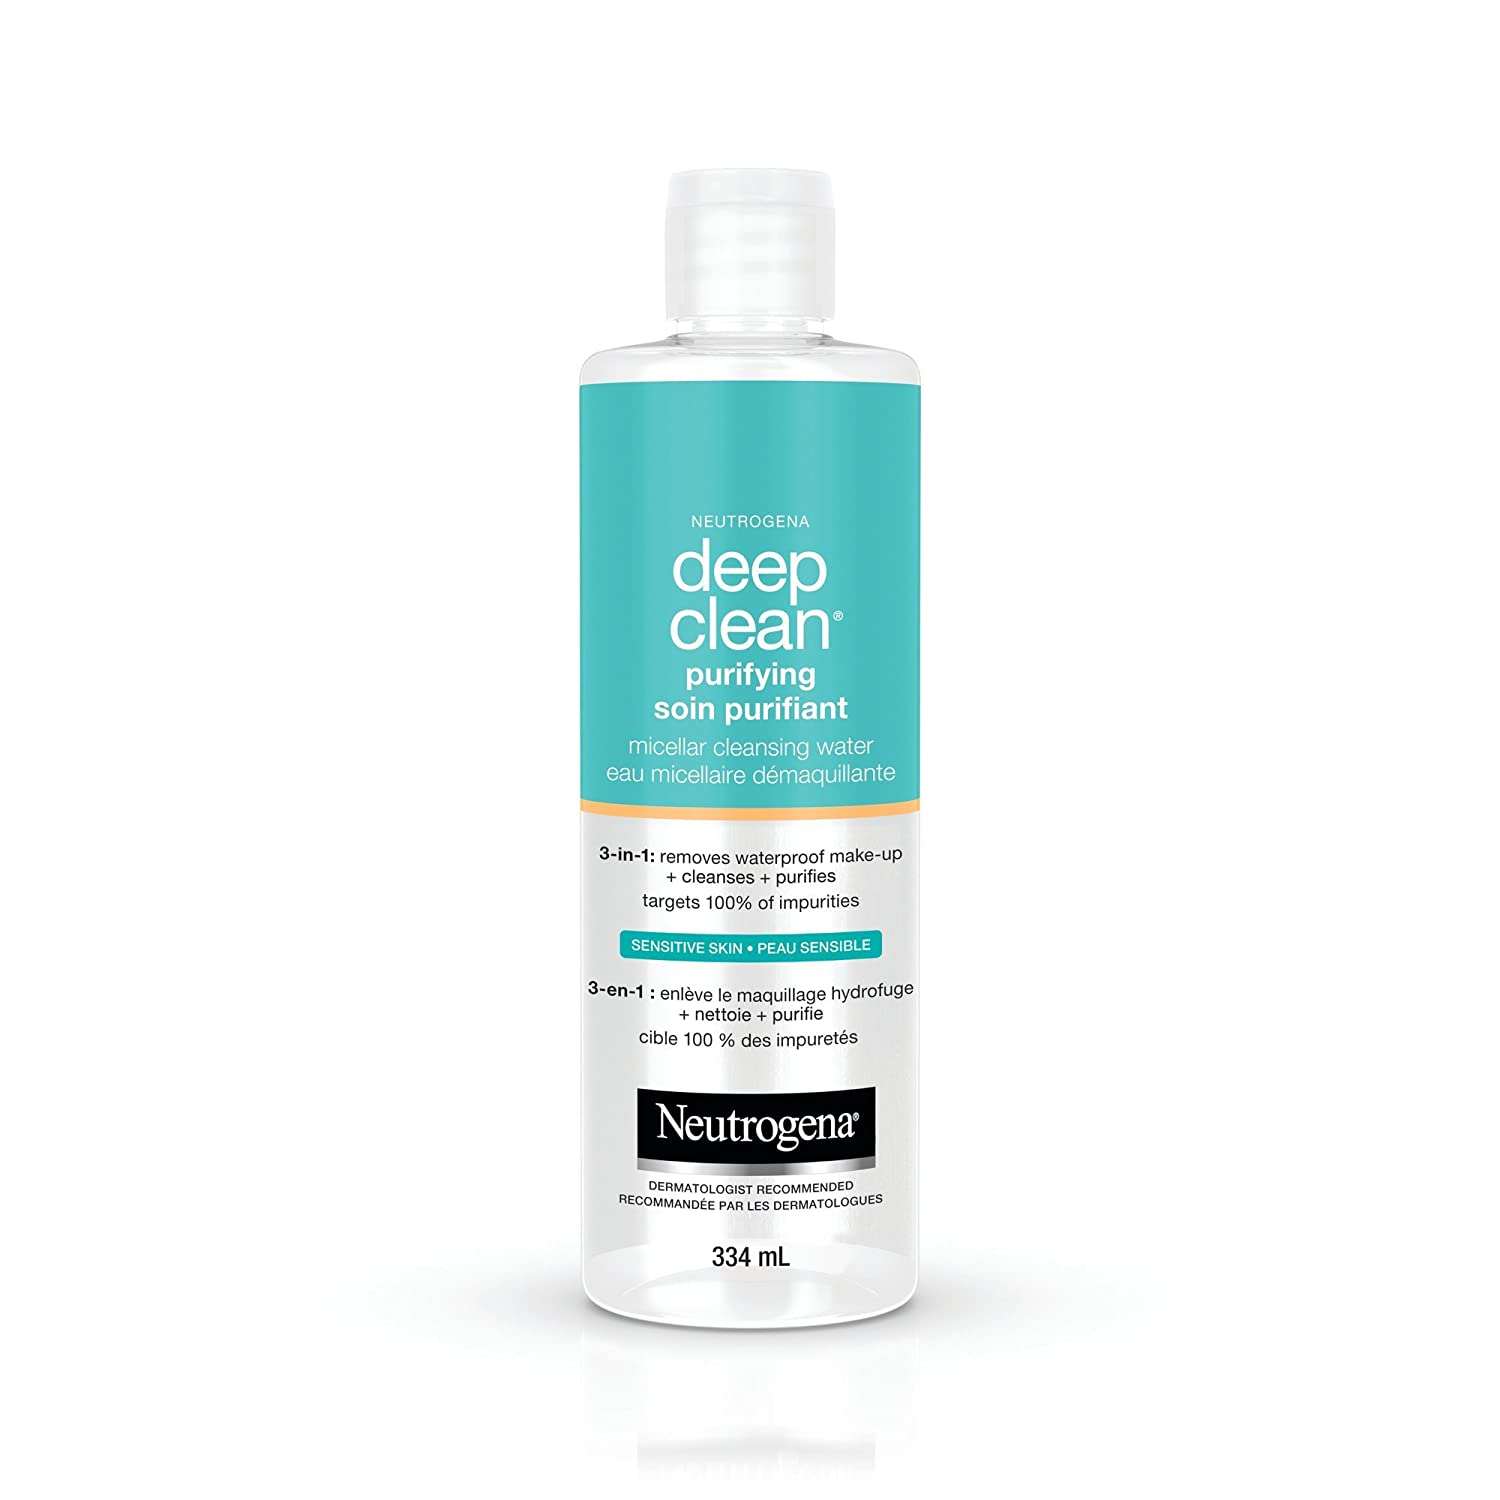 Neutrogena Micellar Water, Deep Clean Purifying Cleanser and Makeup Remover, 334 mL Johnson & Johnson